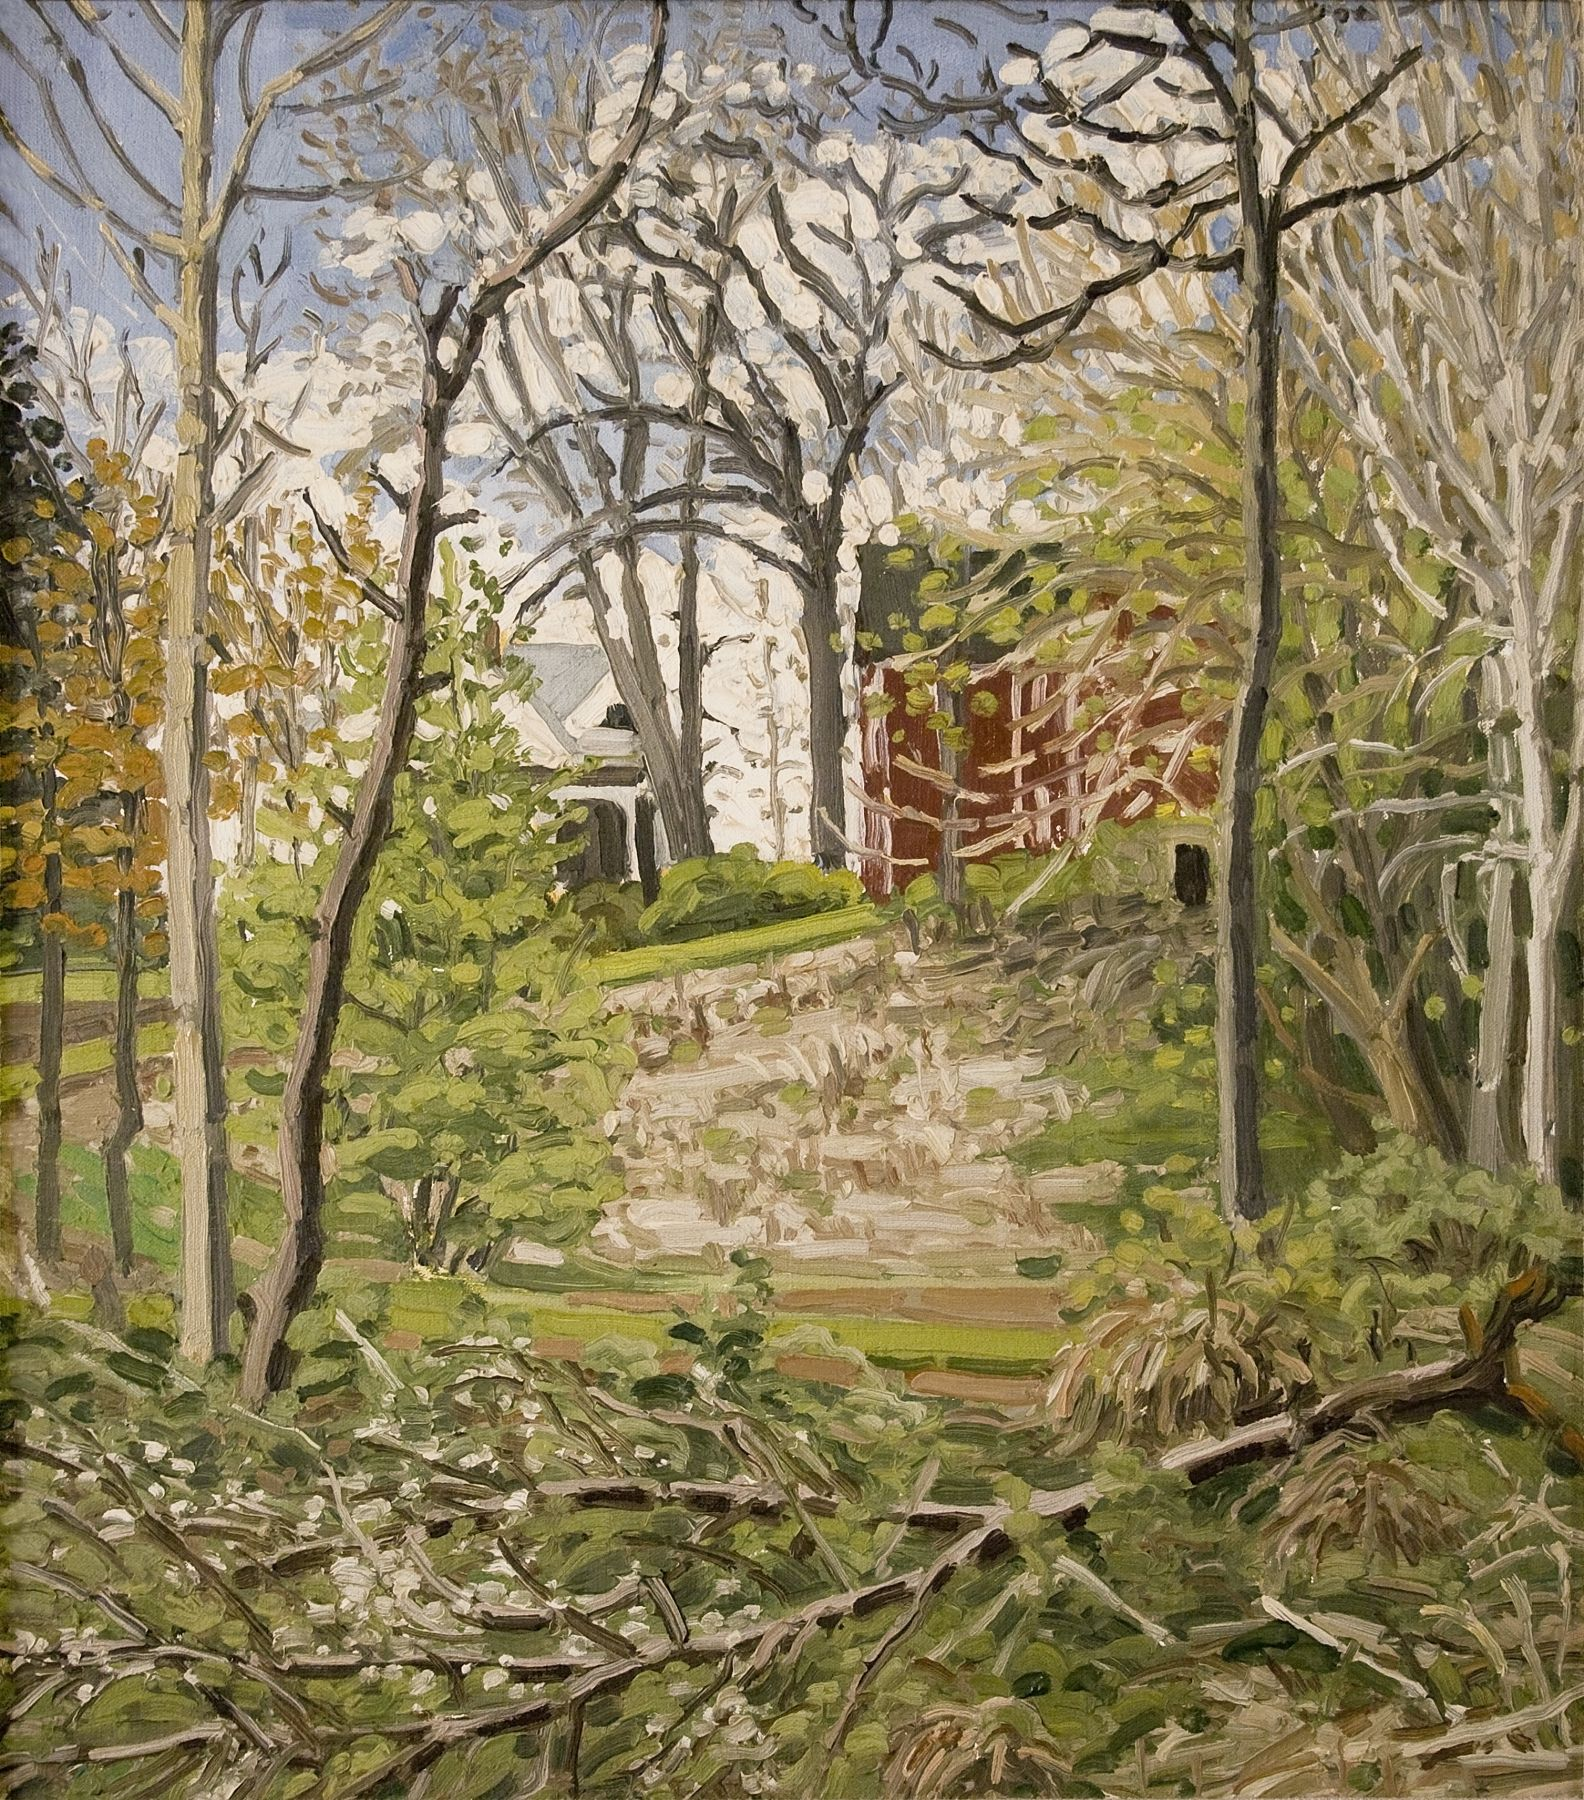 Rackstraw Downes, Nyack, 1972, oil on canvas, 18 x 16 inches